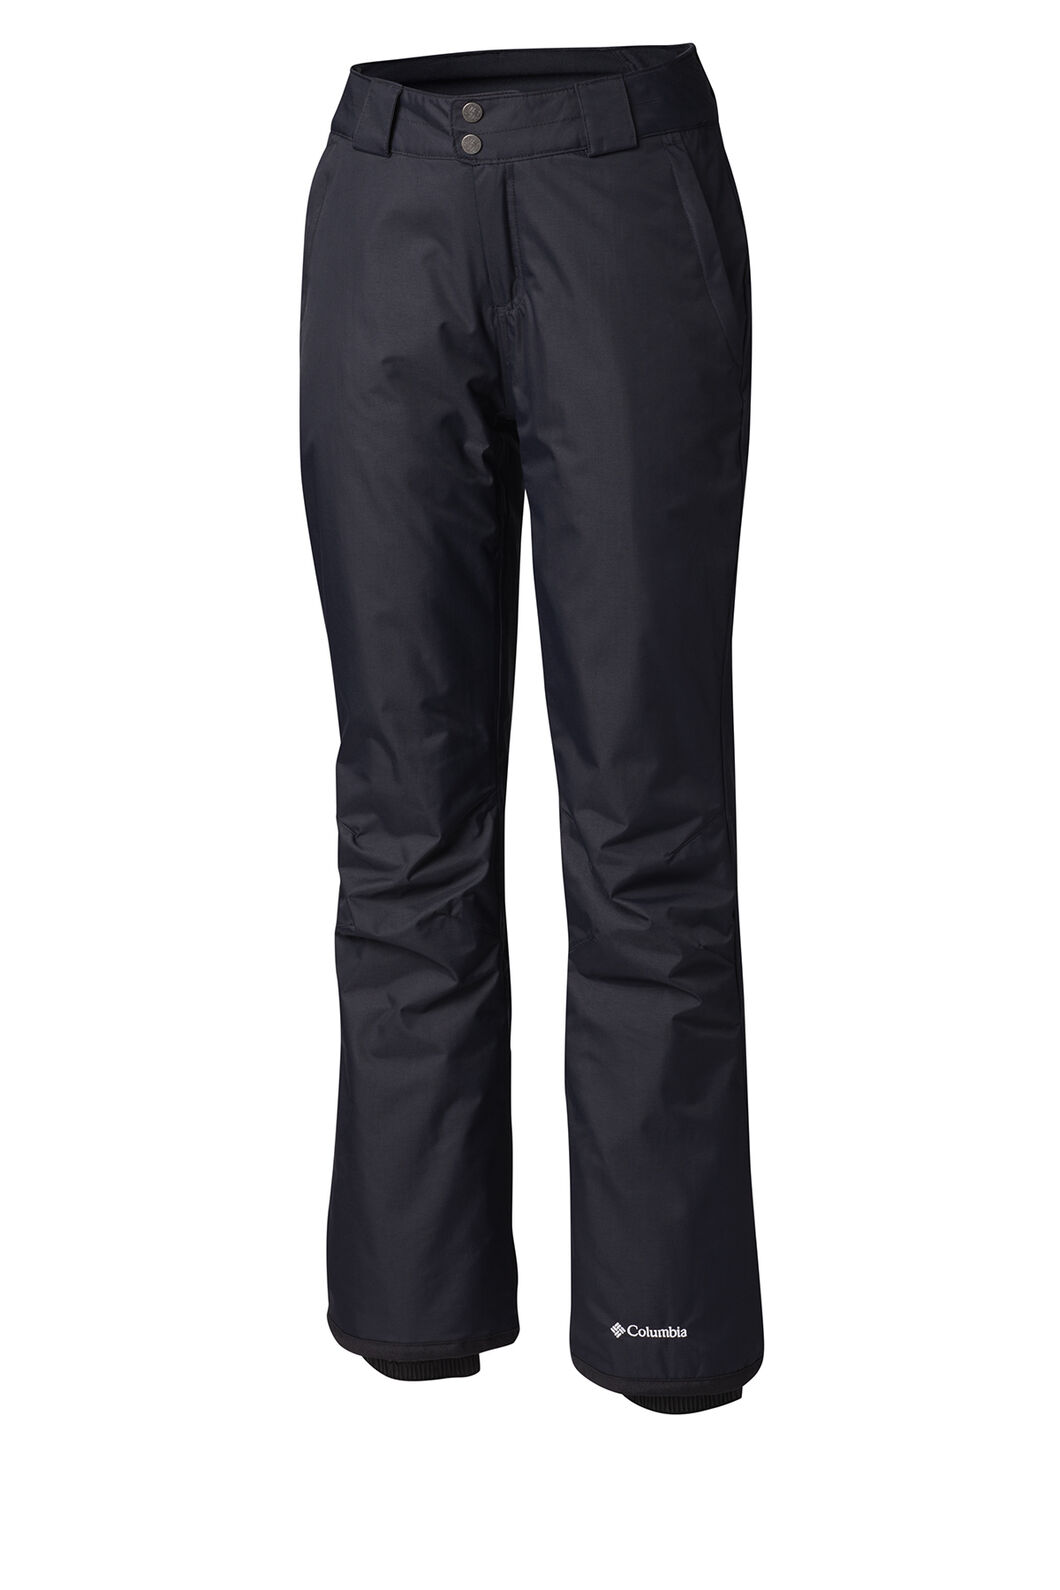 Columbia On the Slope II Pants — Women's, Black, hi-res